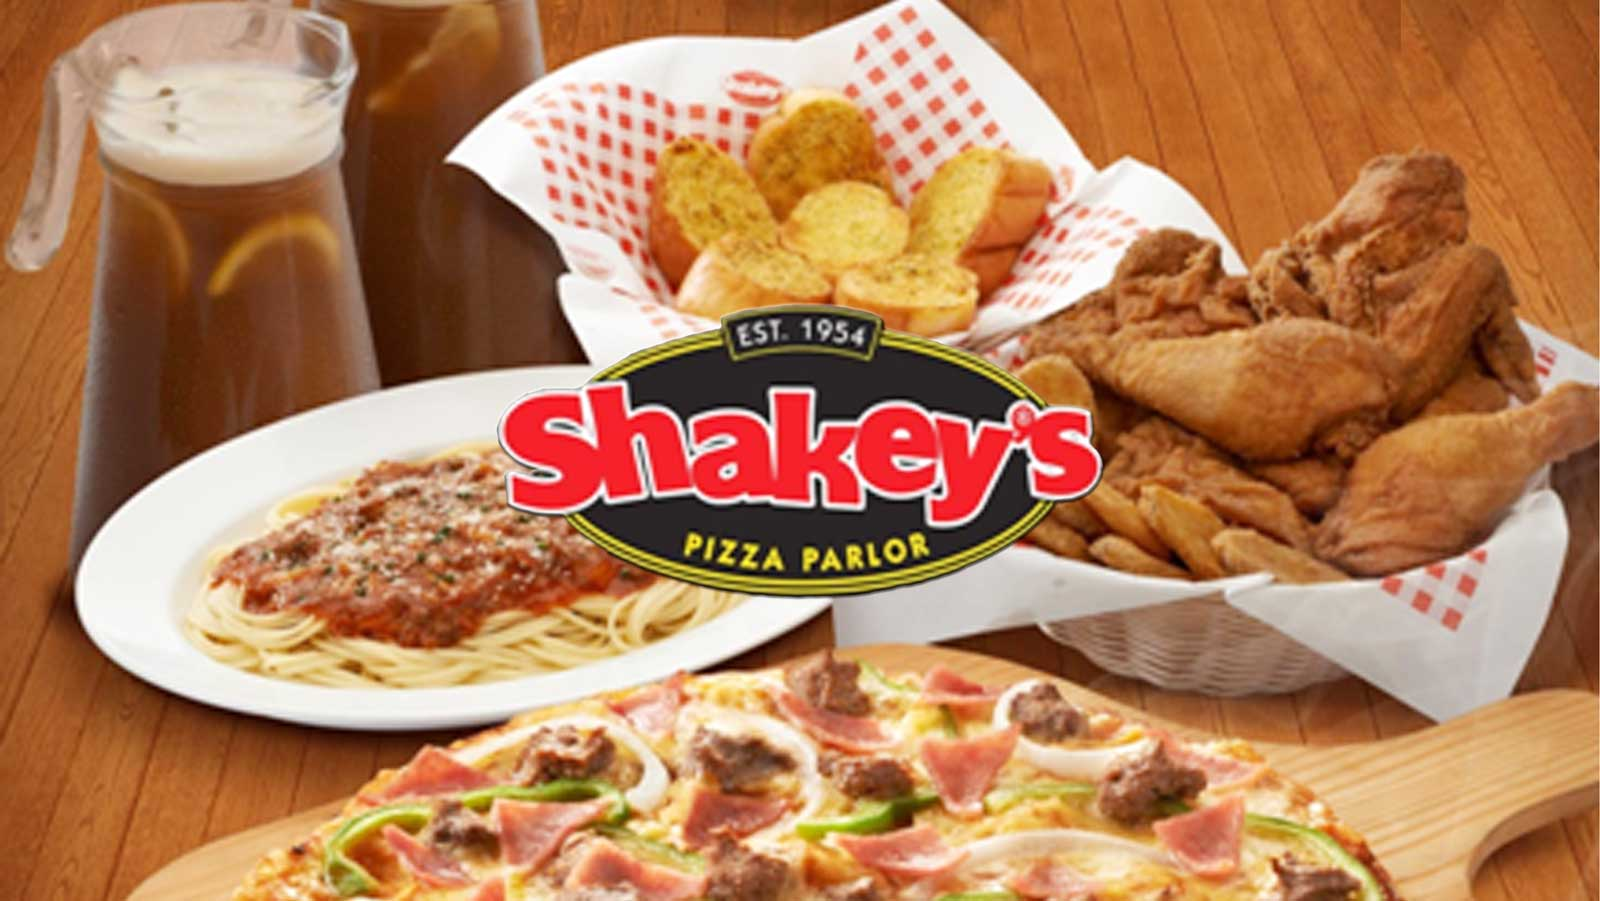 30% discount at Shakey's with your Citi card